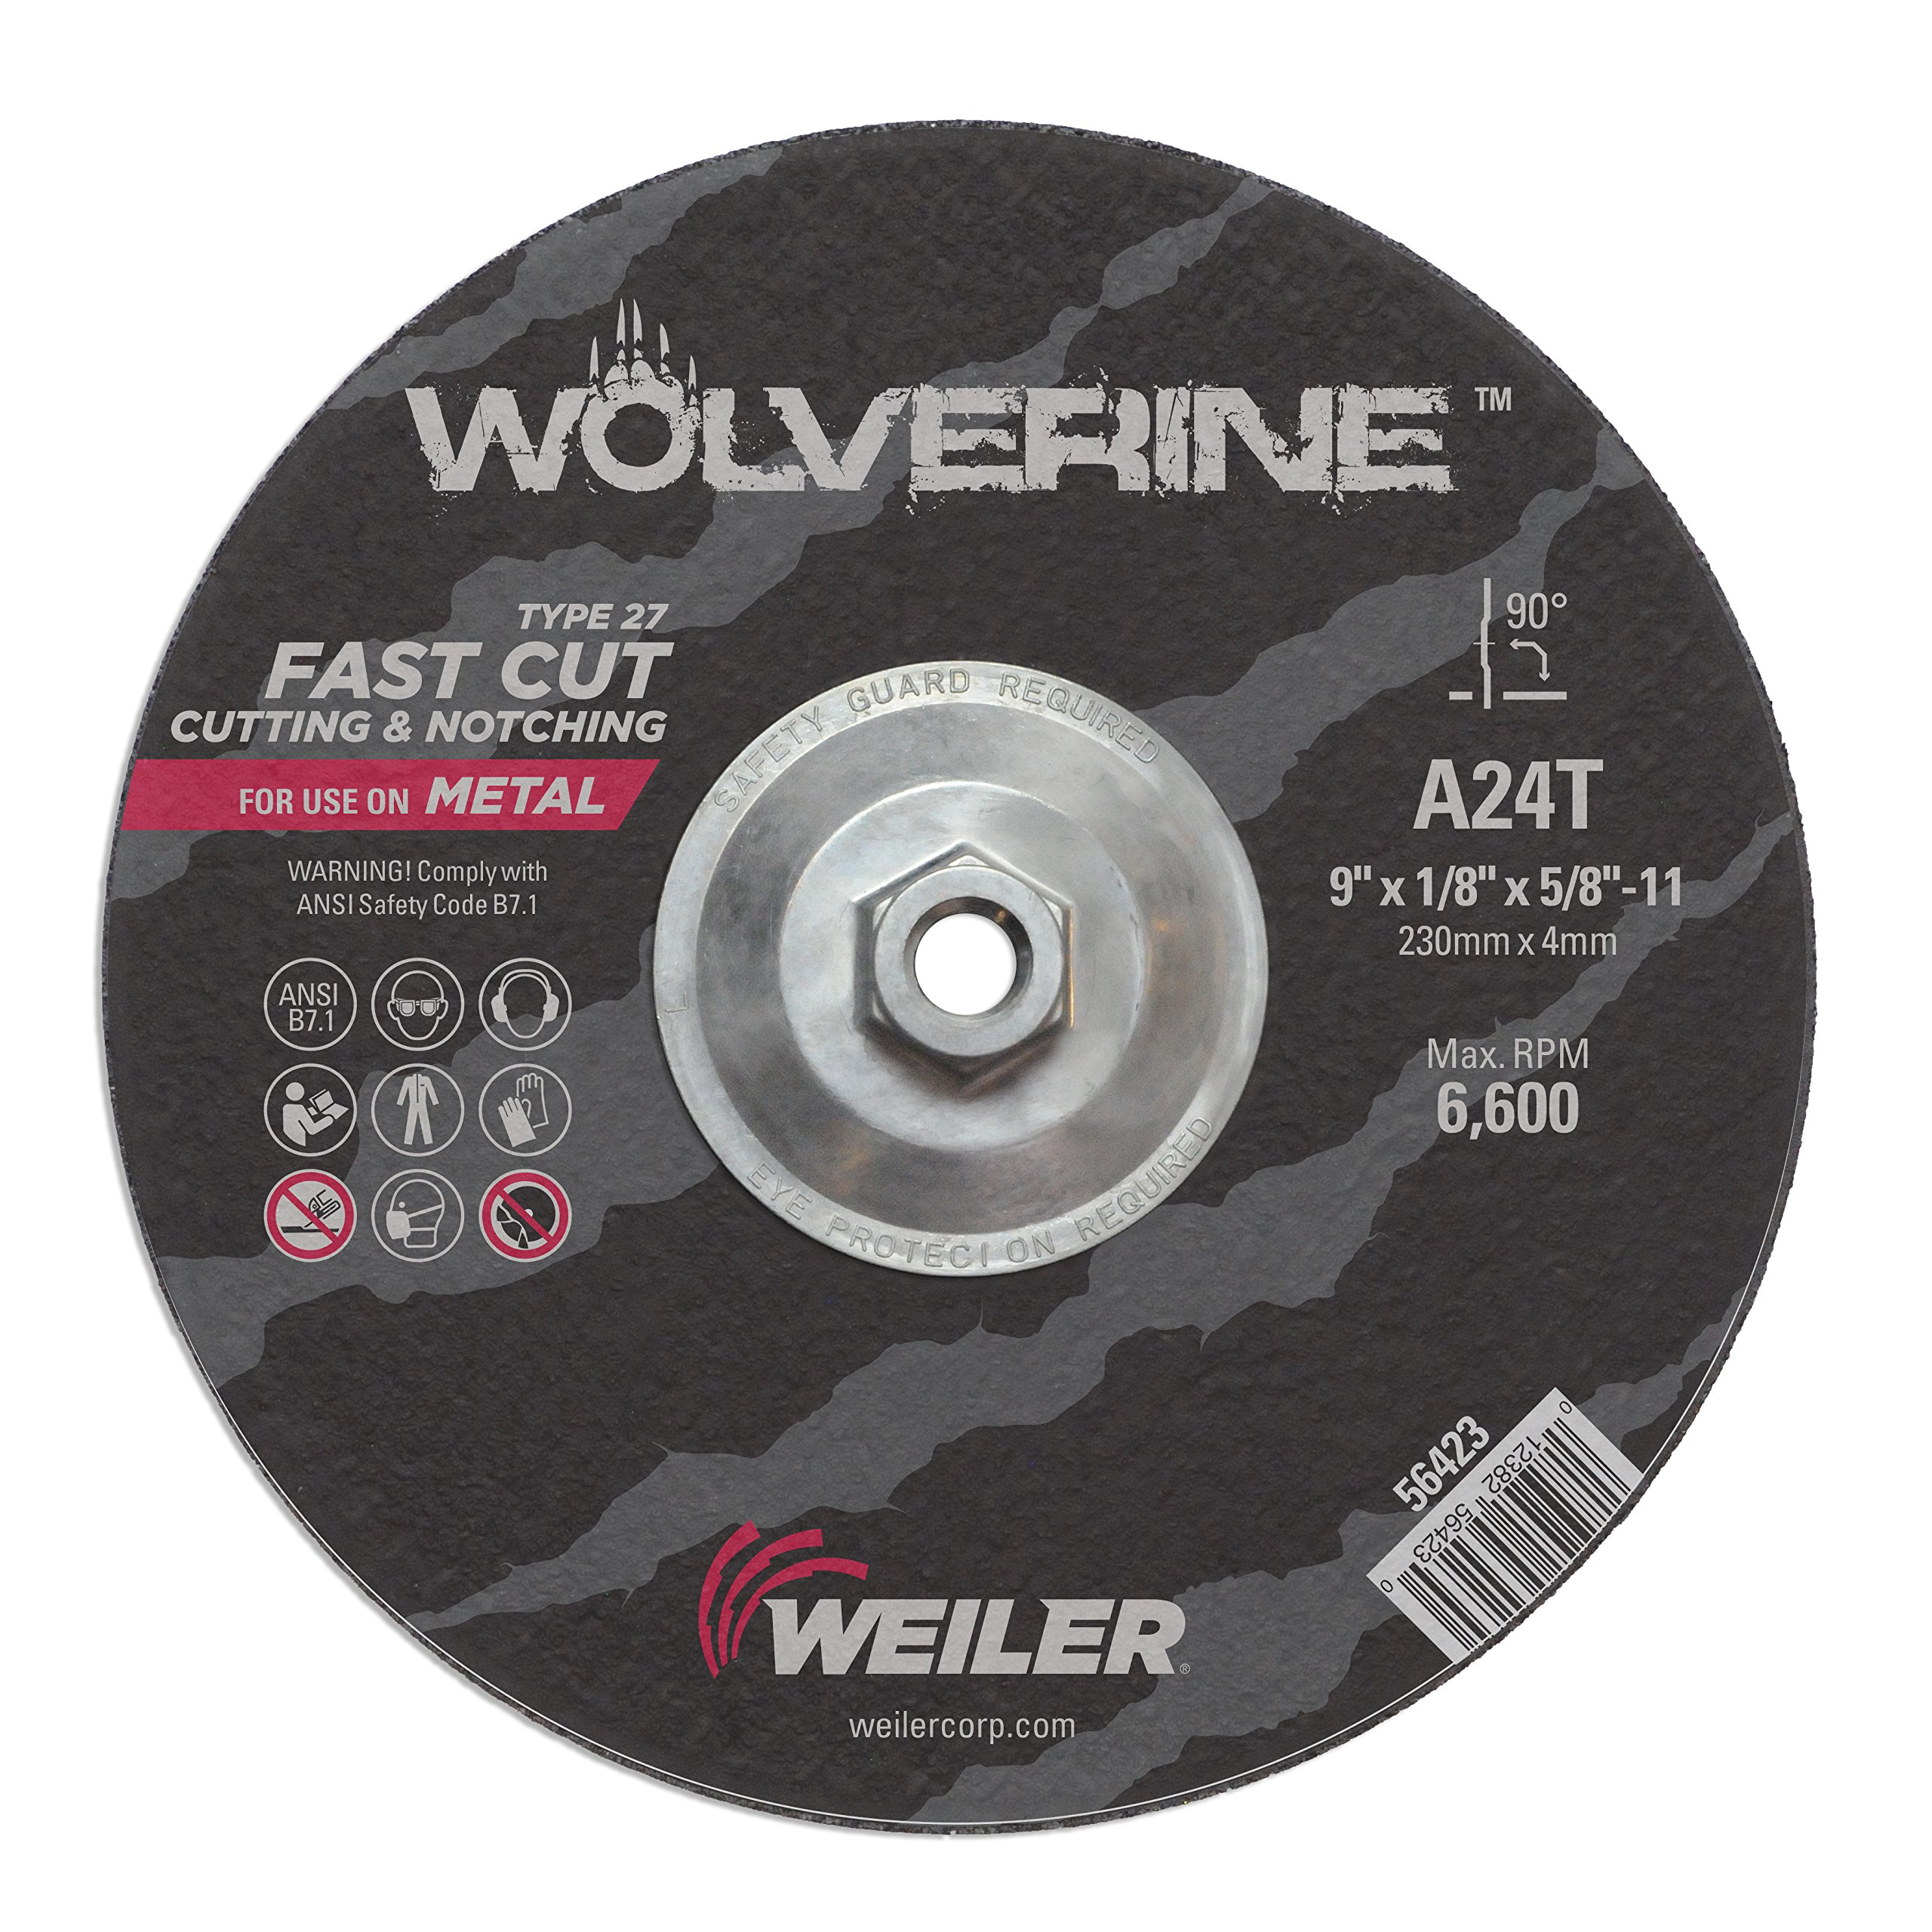 Weiler 56423 9'' x 1/8'' Wolverine Type 27 Cutting Wheel, A24R, 5/8''-11 UNC Nut (Pack of 10)